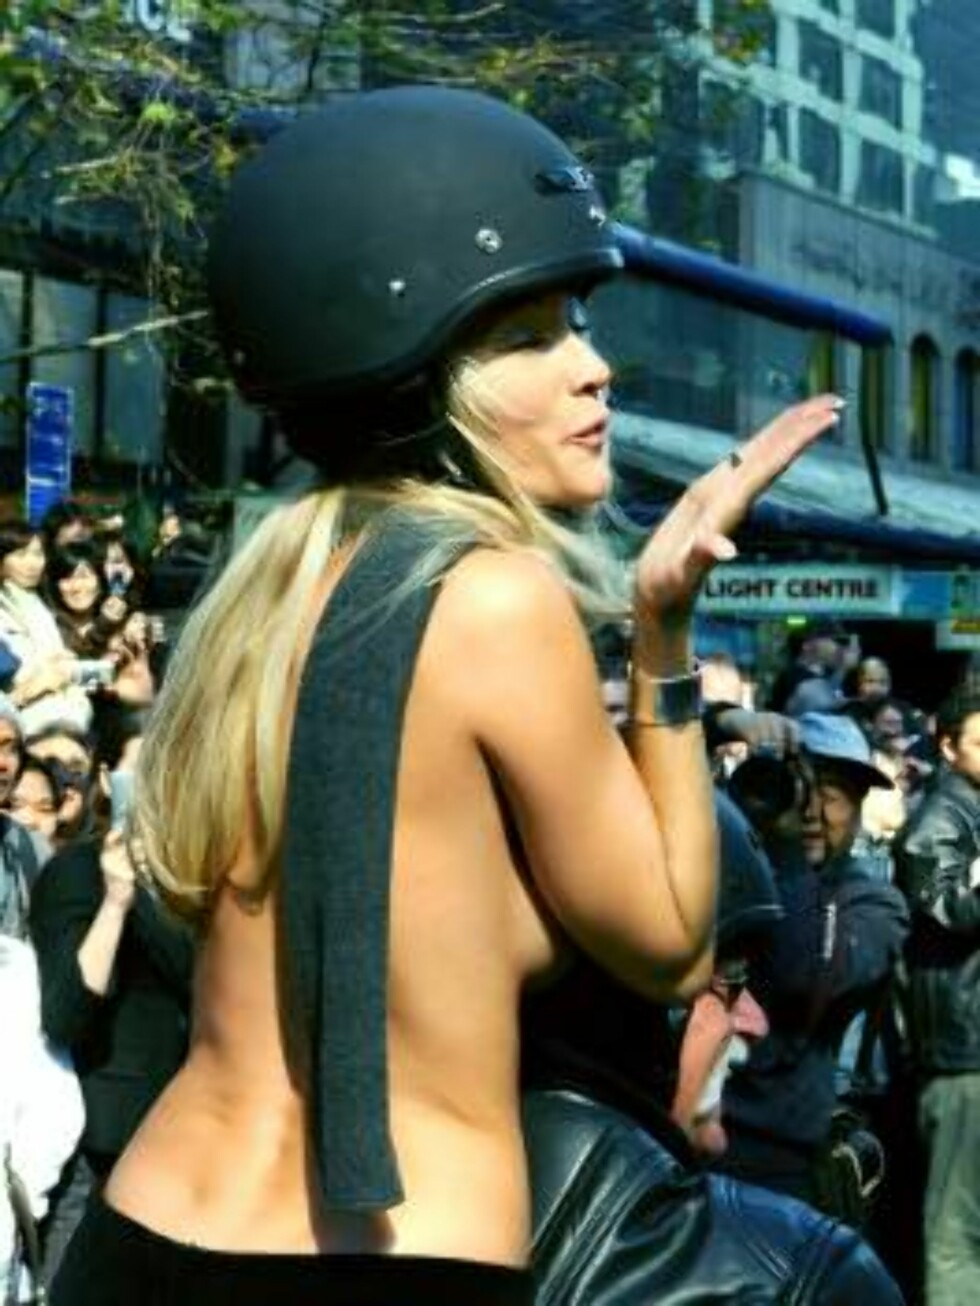 """One of twenty-five topless pornstars blows a kiss as she rides on a motorcycle down Auckland, New Zealand's Queen Street Wednesday, Aug. 23, 2006. Dubbed the """"Boobs on Bikes"""" parade, it is being used to publicize an erotica show which opens in Auckland la Foto: AP"""